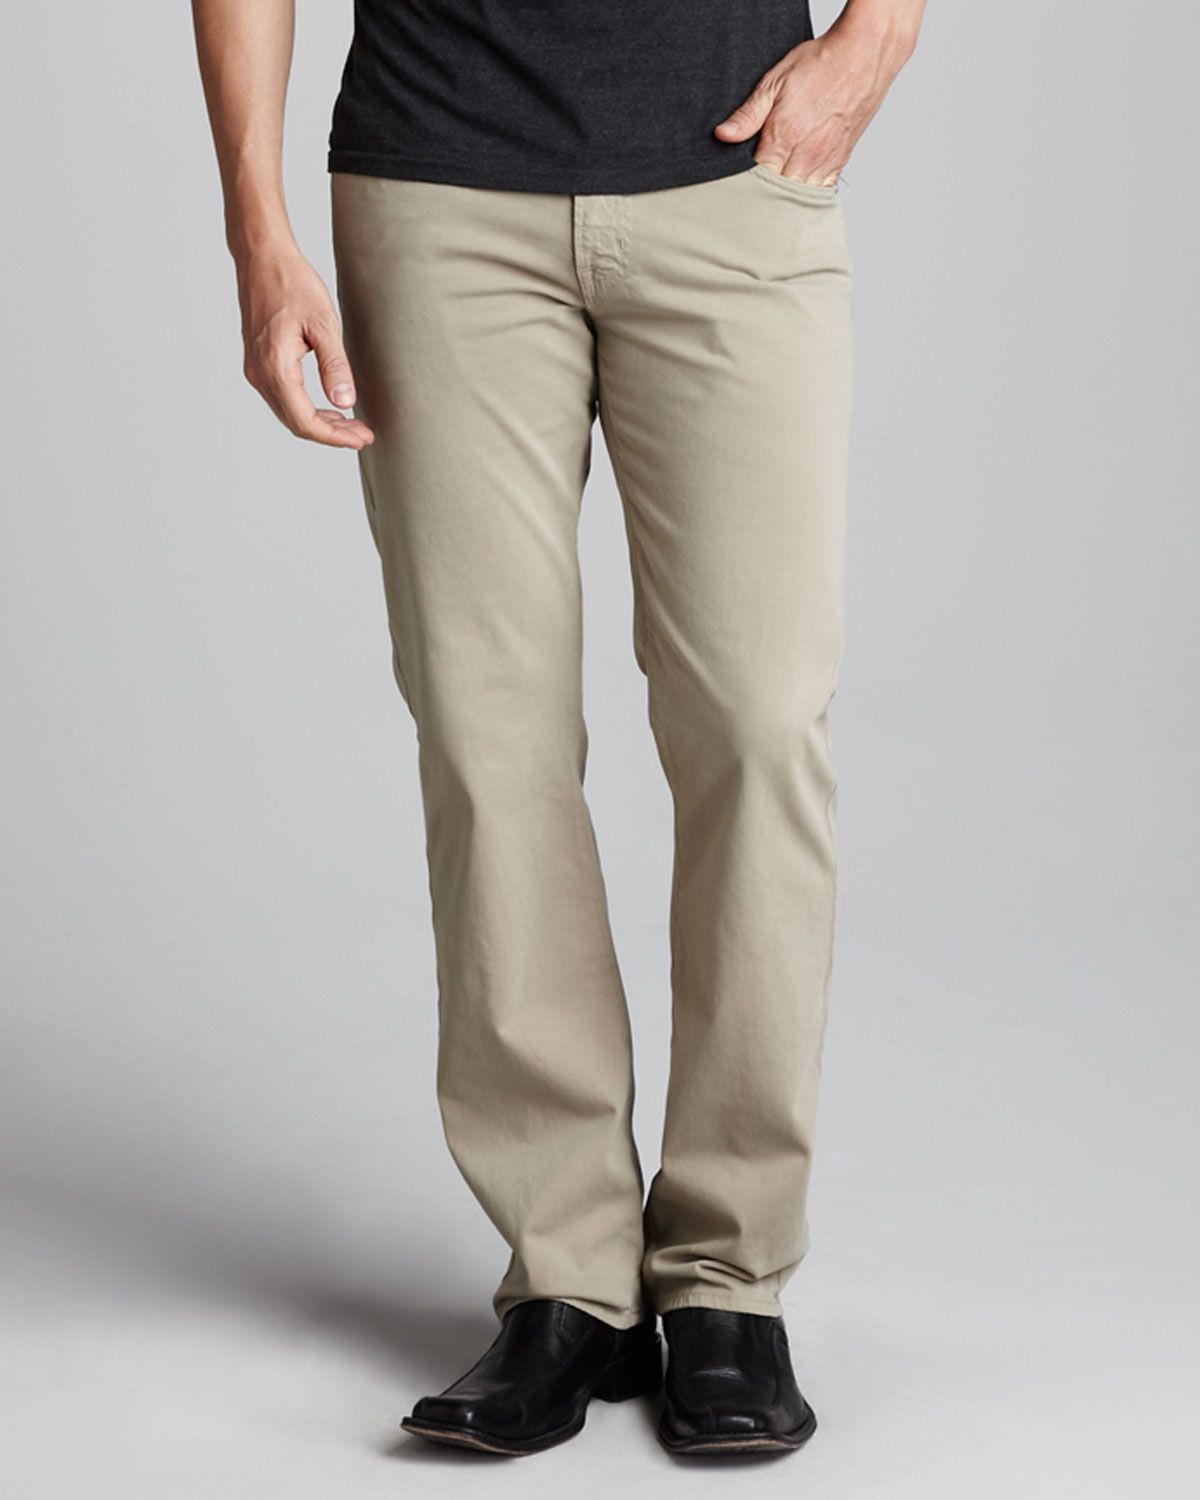 http://nutweekly.com/ag-adriano-goldschmied-protege-pants-corn-silk-p-448.html